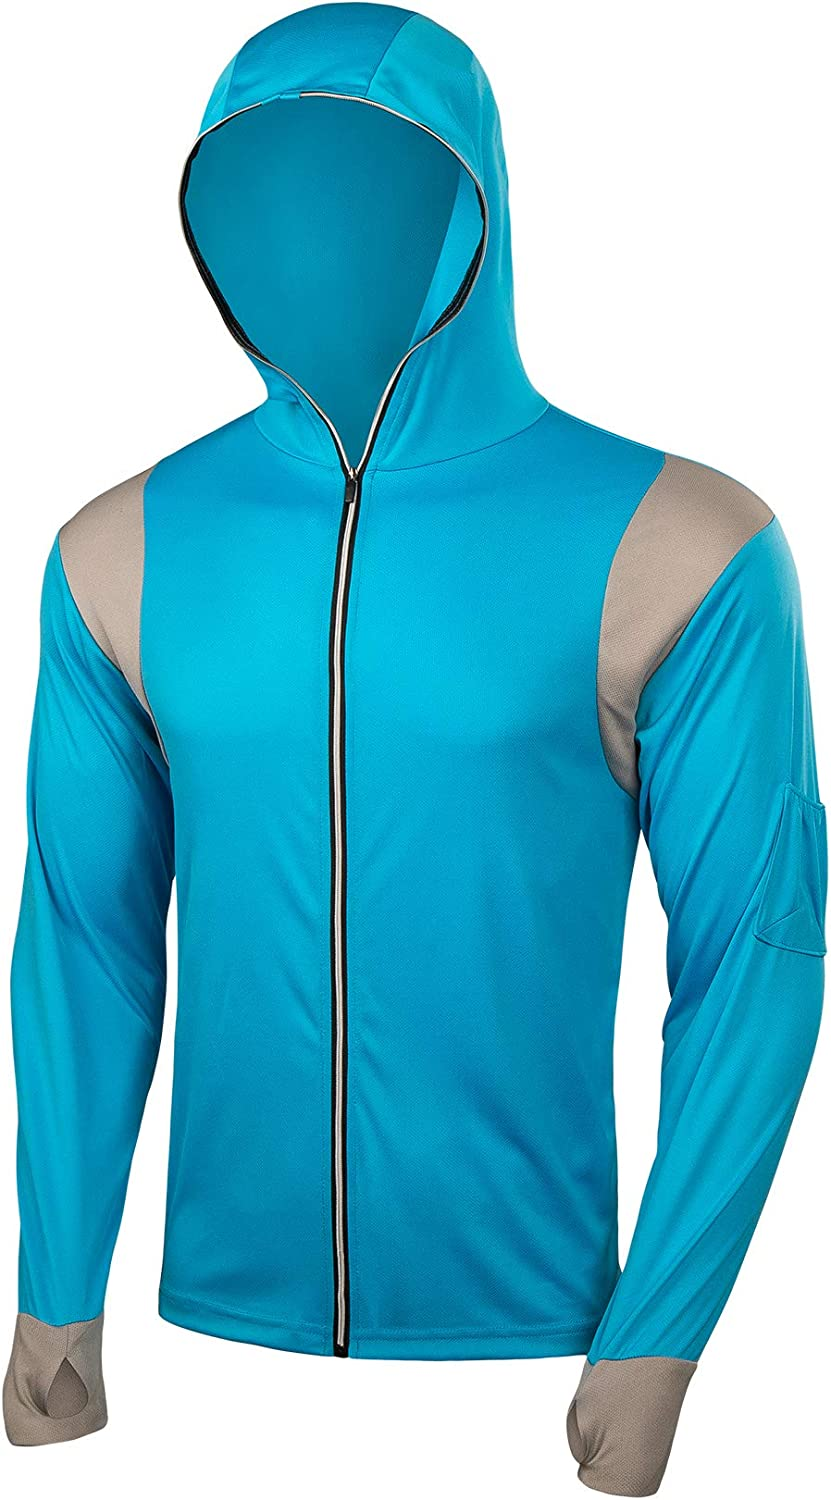 FitsT4 Men's Sun Protection UPF 40+ UV Outdoor Long Sleeve Quick Drying Mesh Fishing Shirts with Hood/Thumb Hole